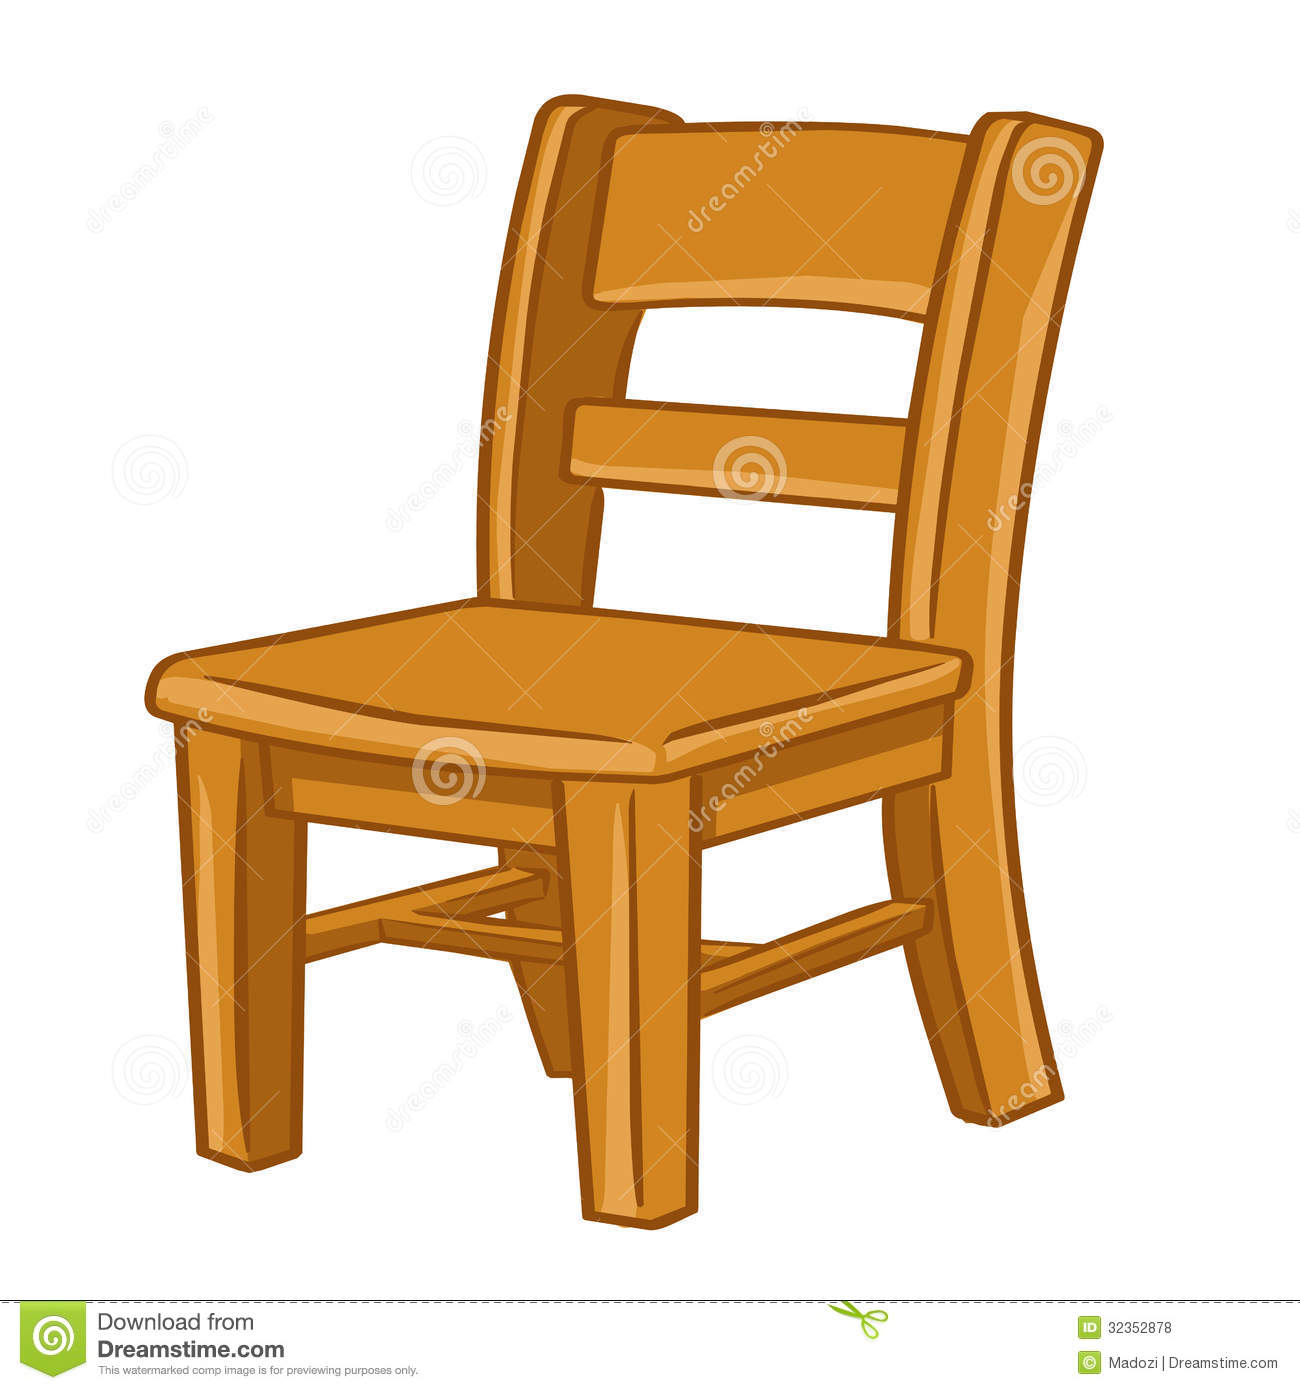 chair clipart - Chairs Clipart